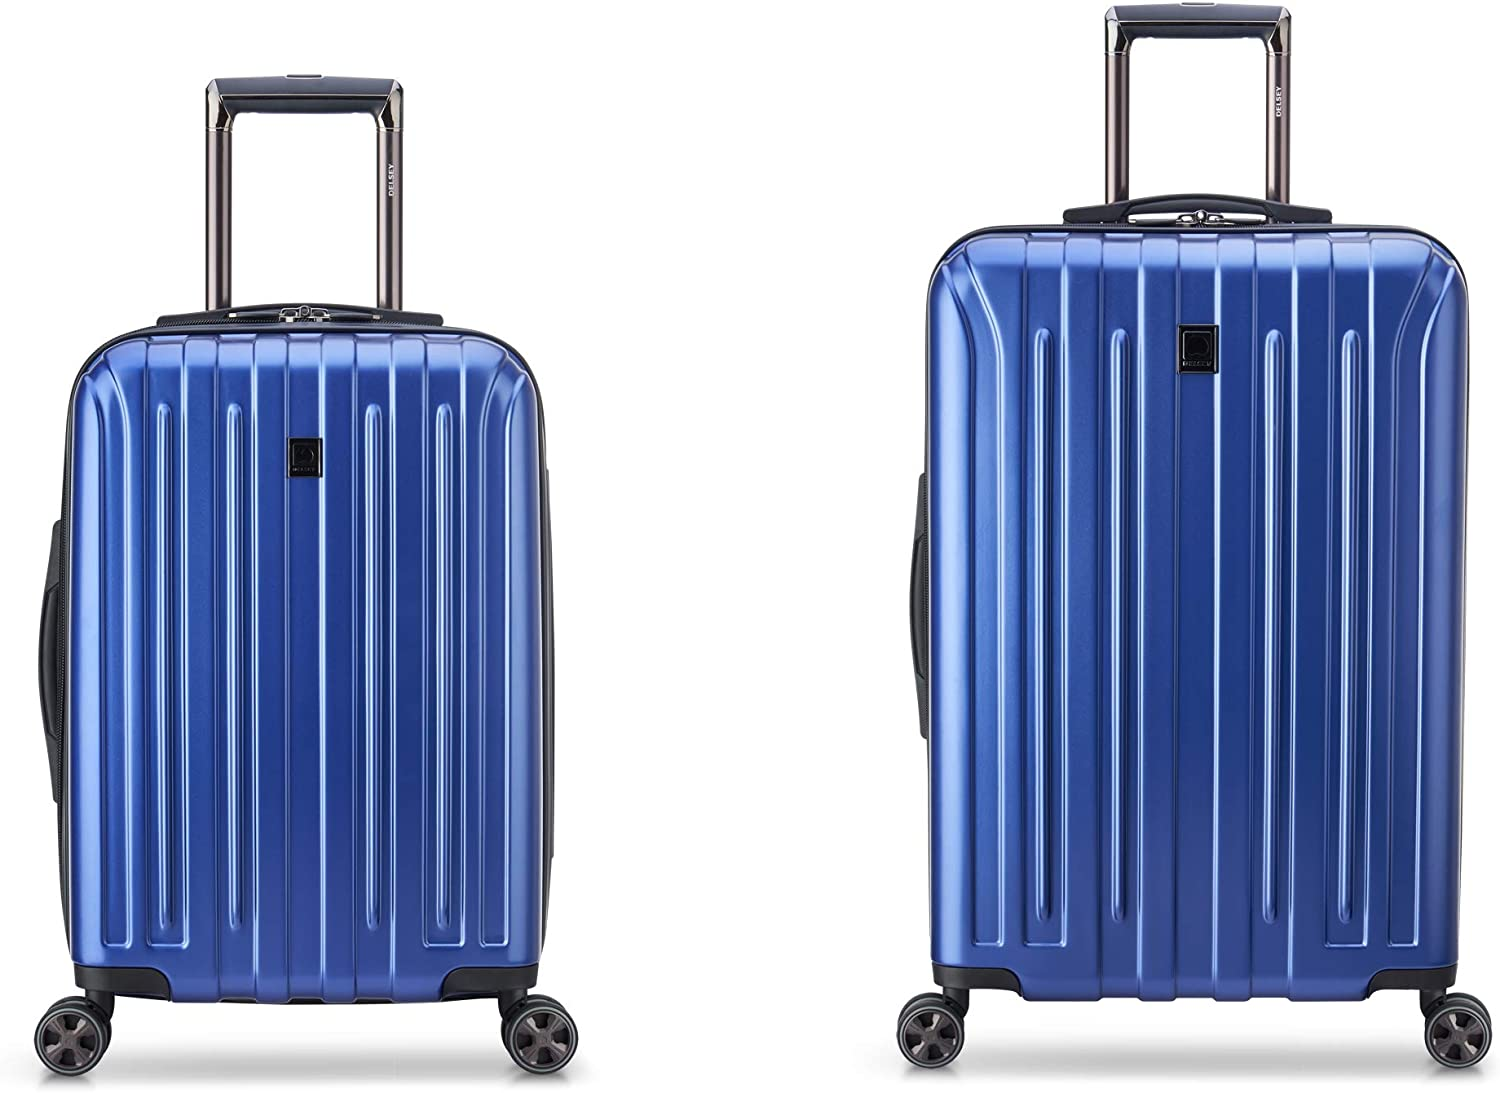 DELSEY Paris Titanium DLX Hardside Luggage with Spinner Wheels, Blue, 2-Piece Set (21/25)